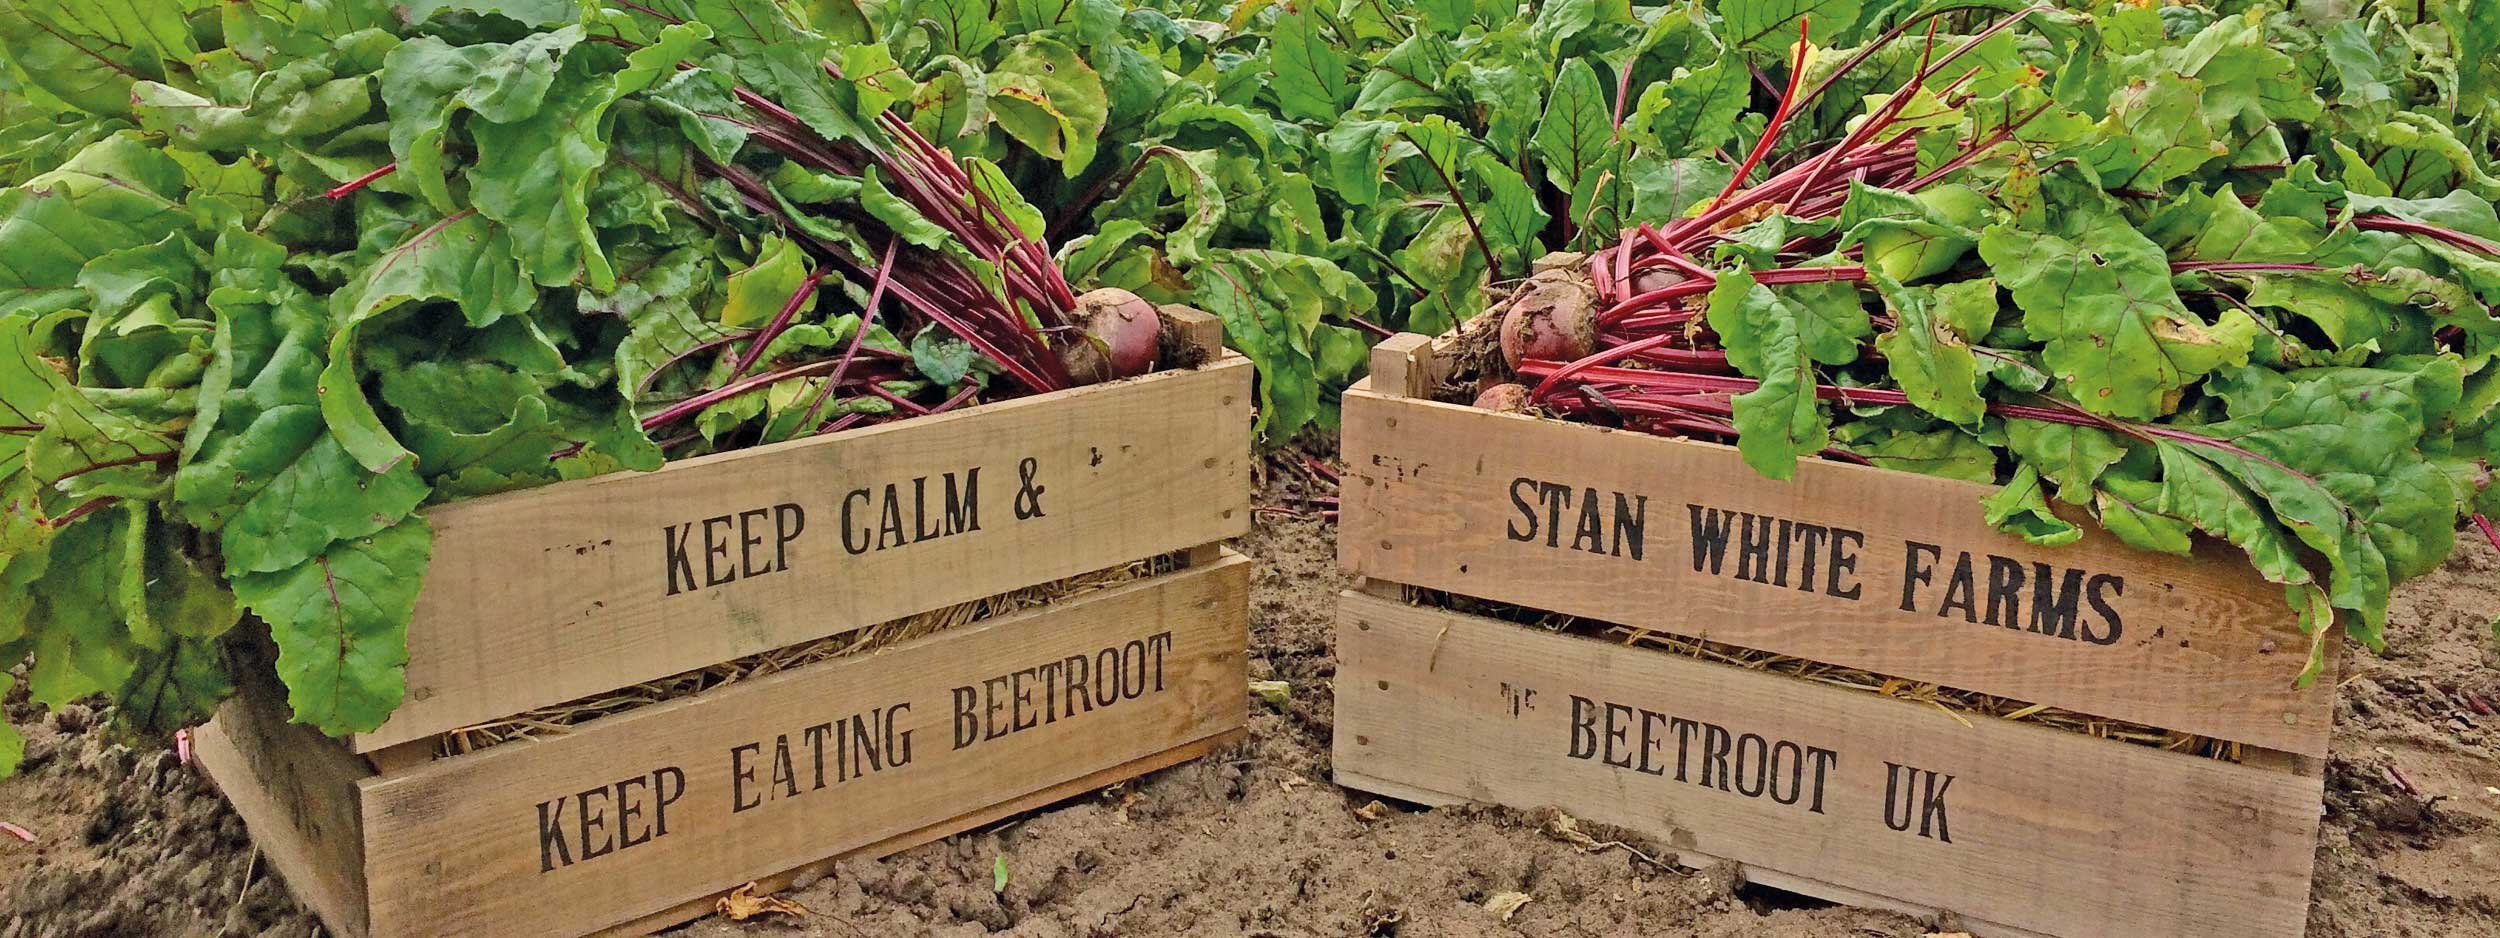 one of Britains largest beetroot suppliers in the UK